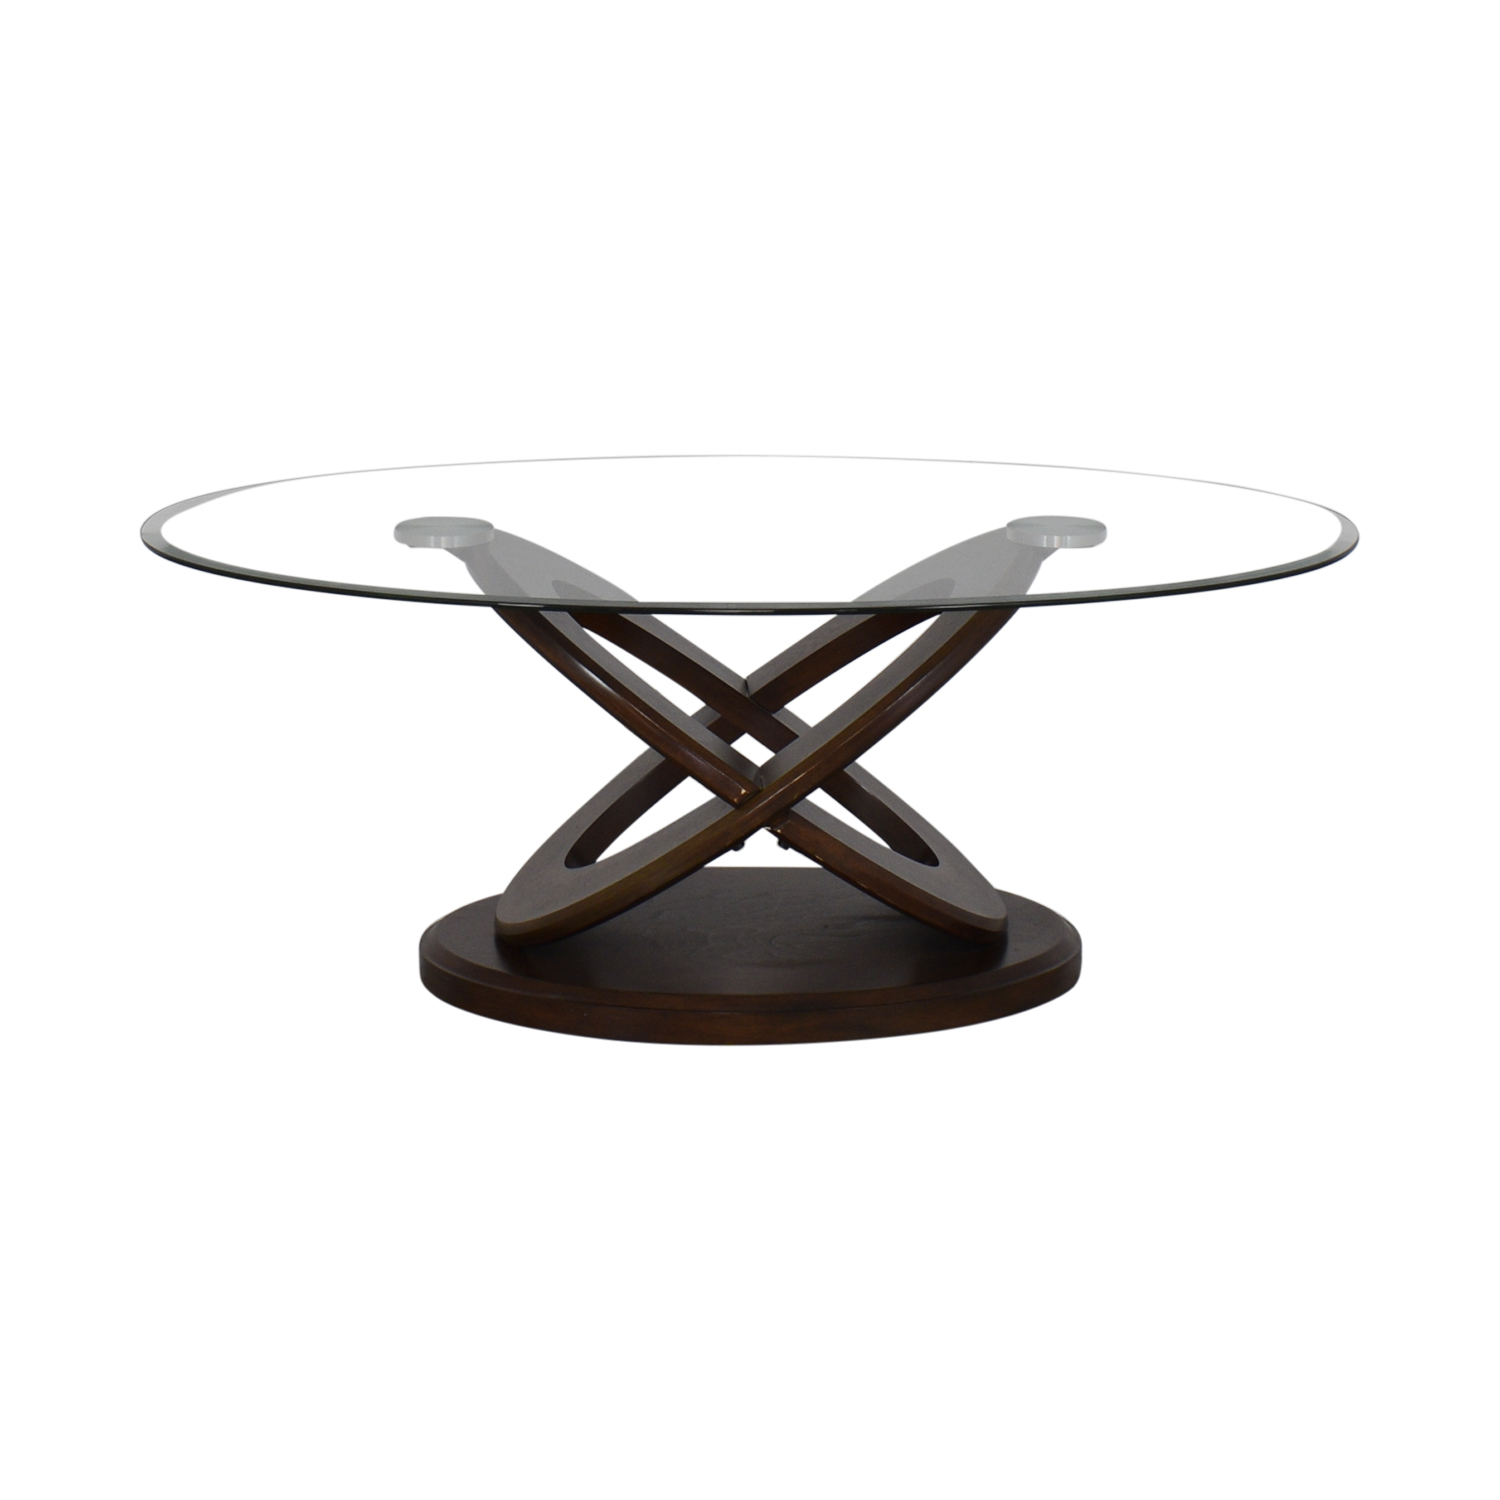 Orren Ellis Orren Ellis Mavek Coffee Table on sale